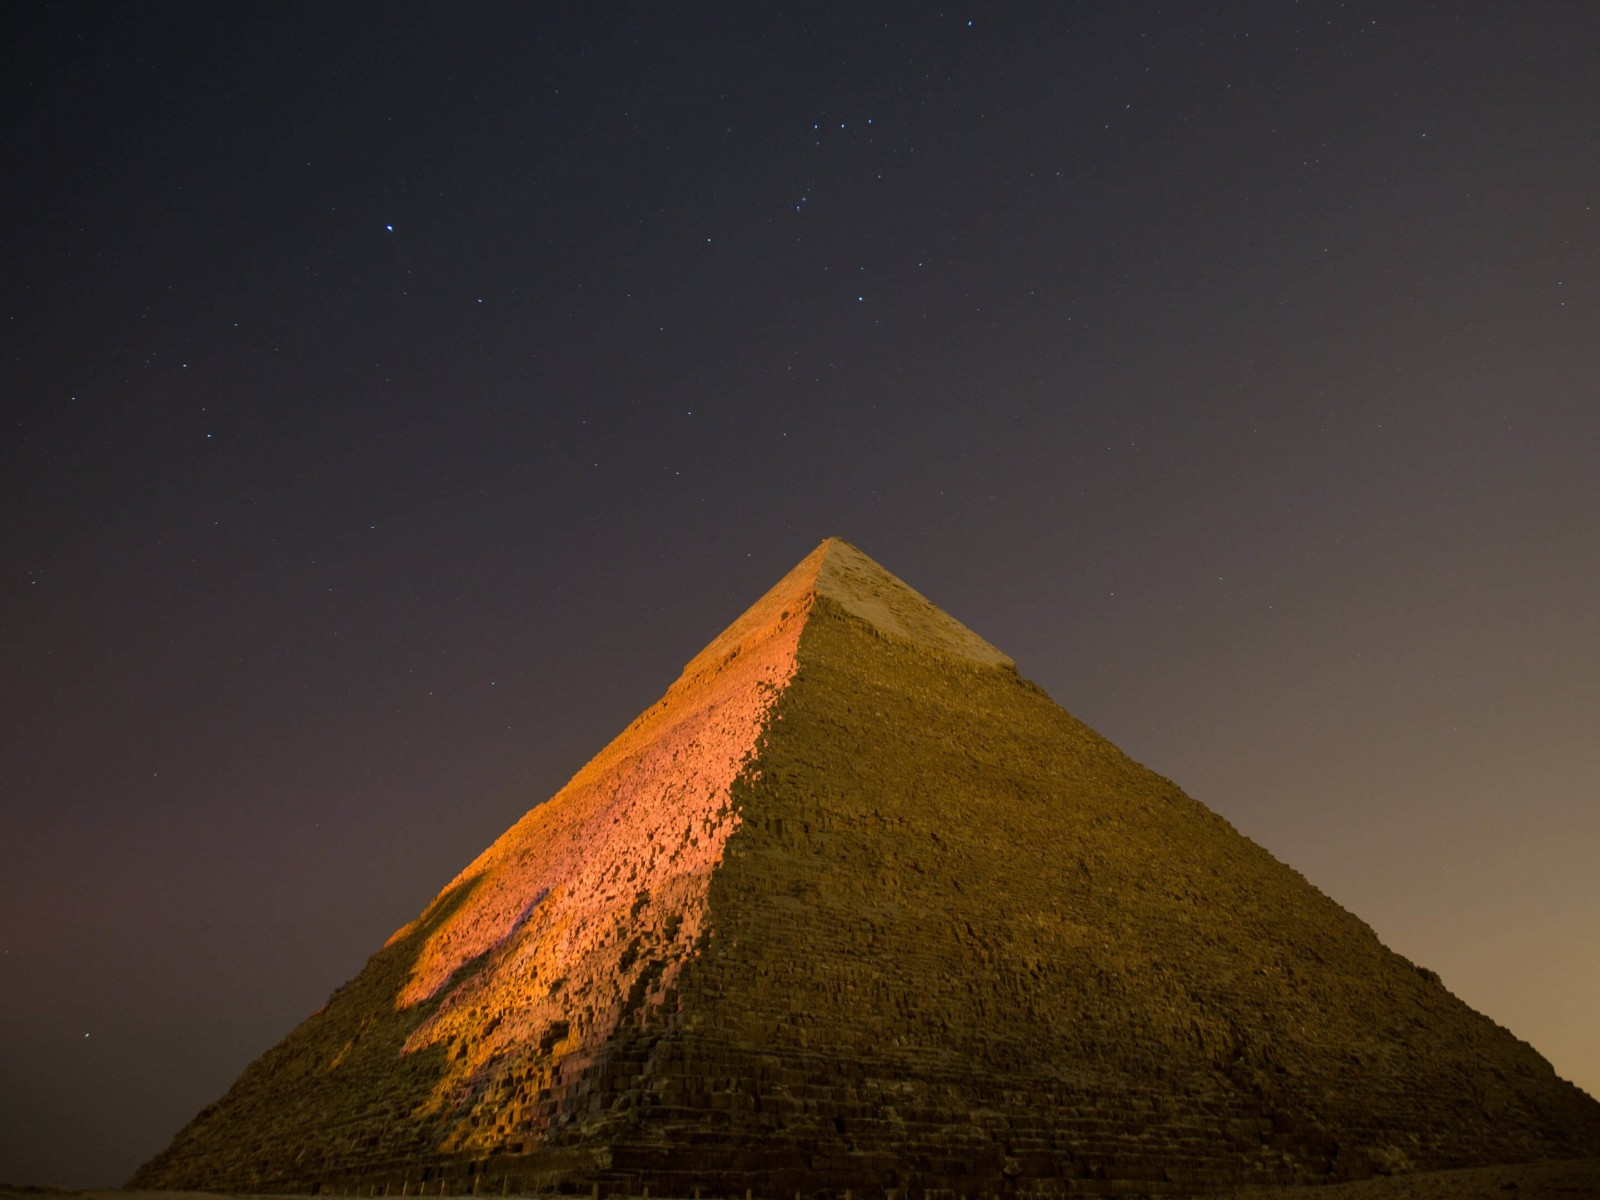 Pyramid by Night Wallpaper for Desktop 1600x1200